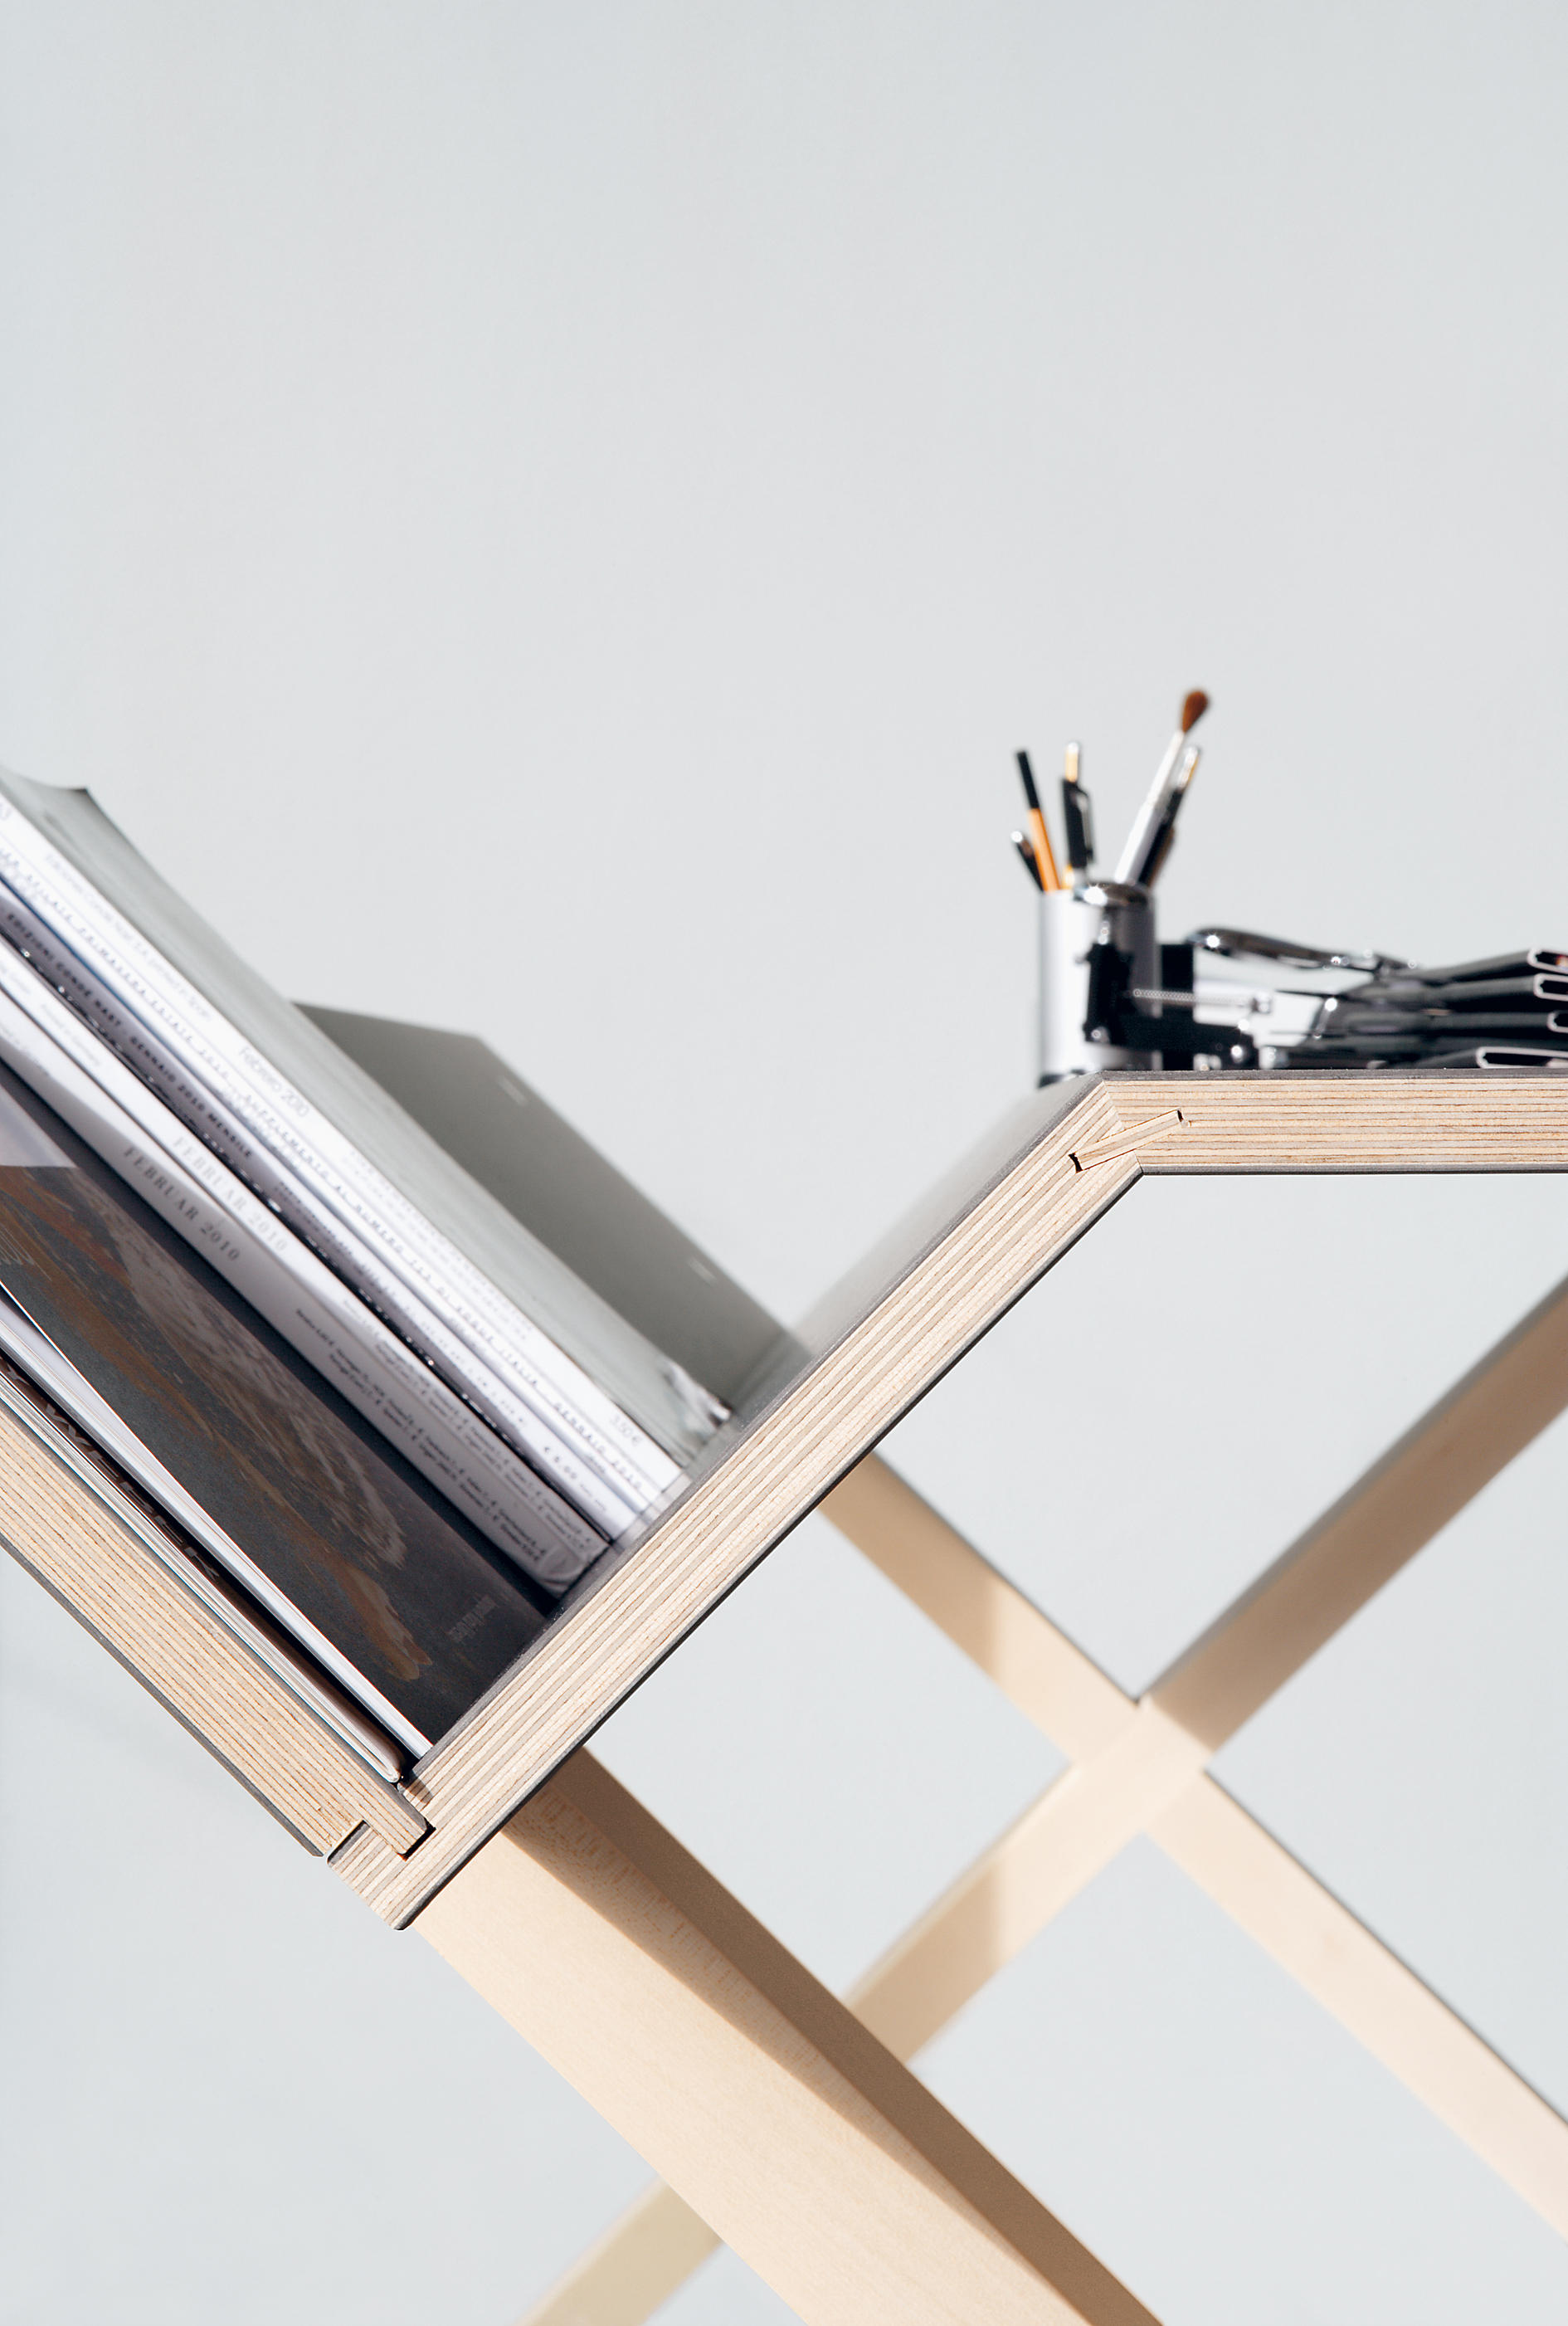 Mini Sekretär Kant Desks From Nils Holger Moormann Architonic